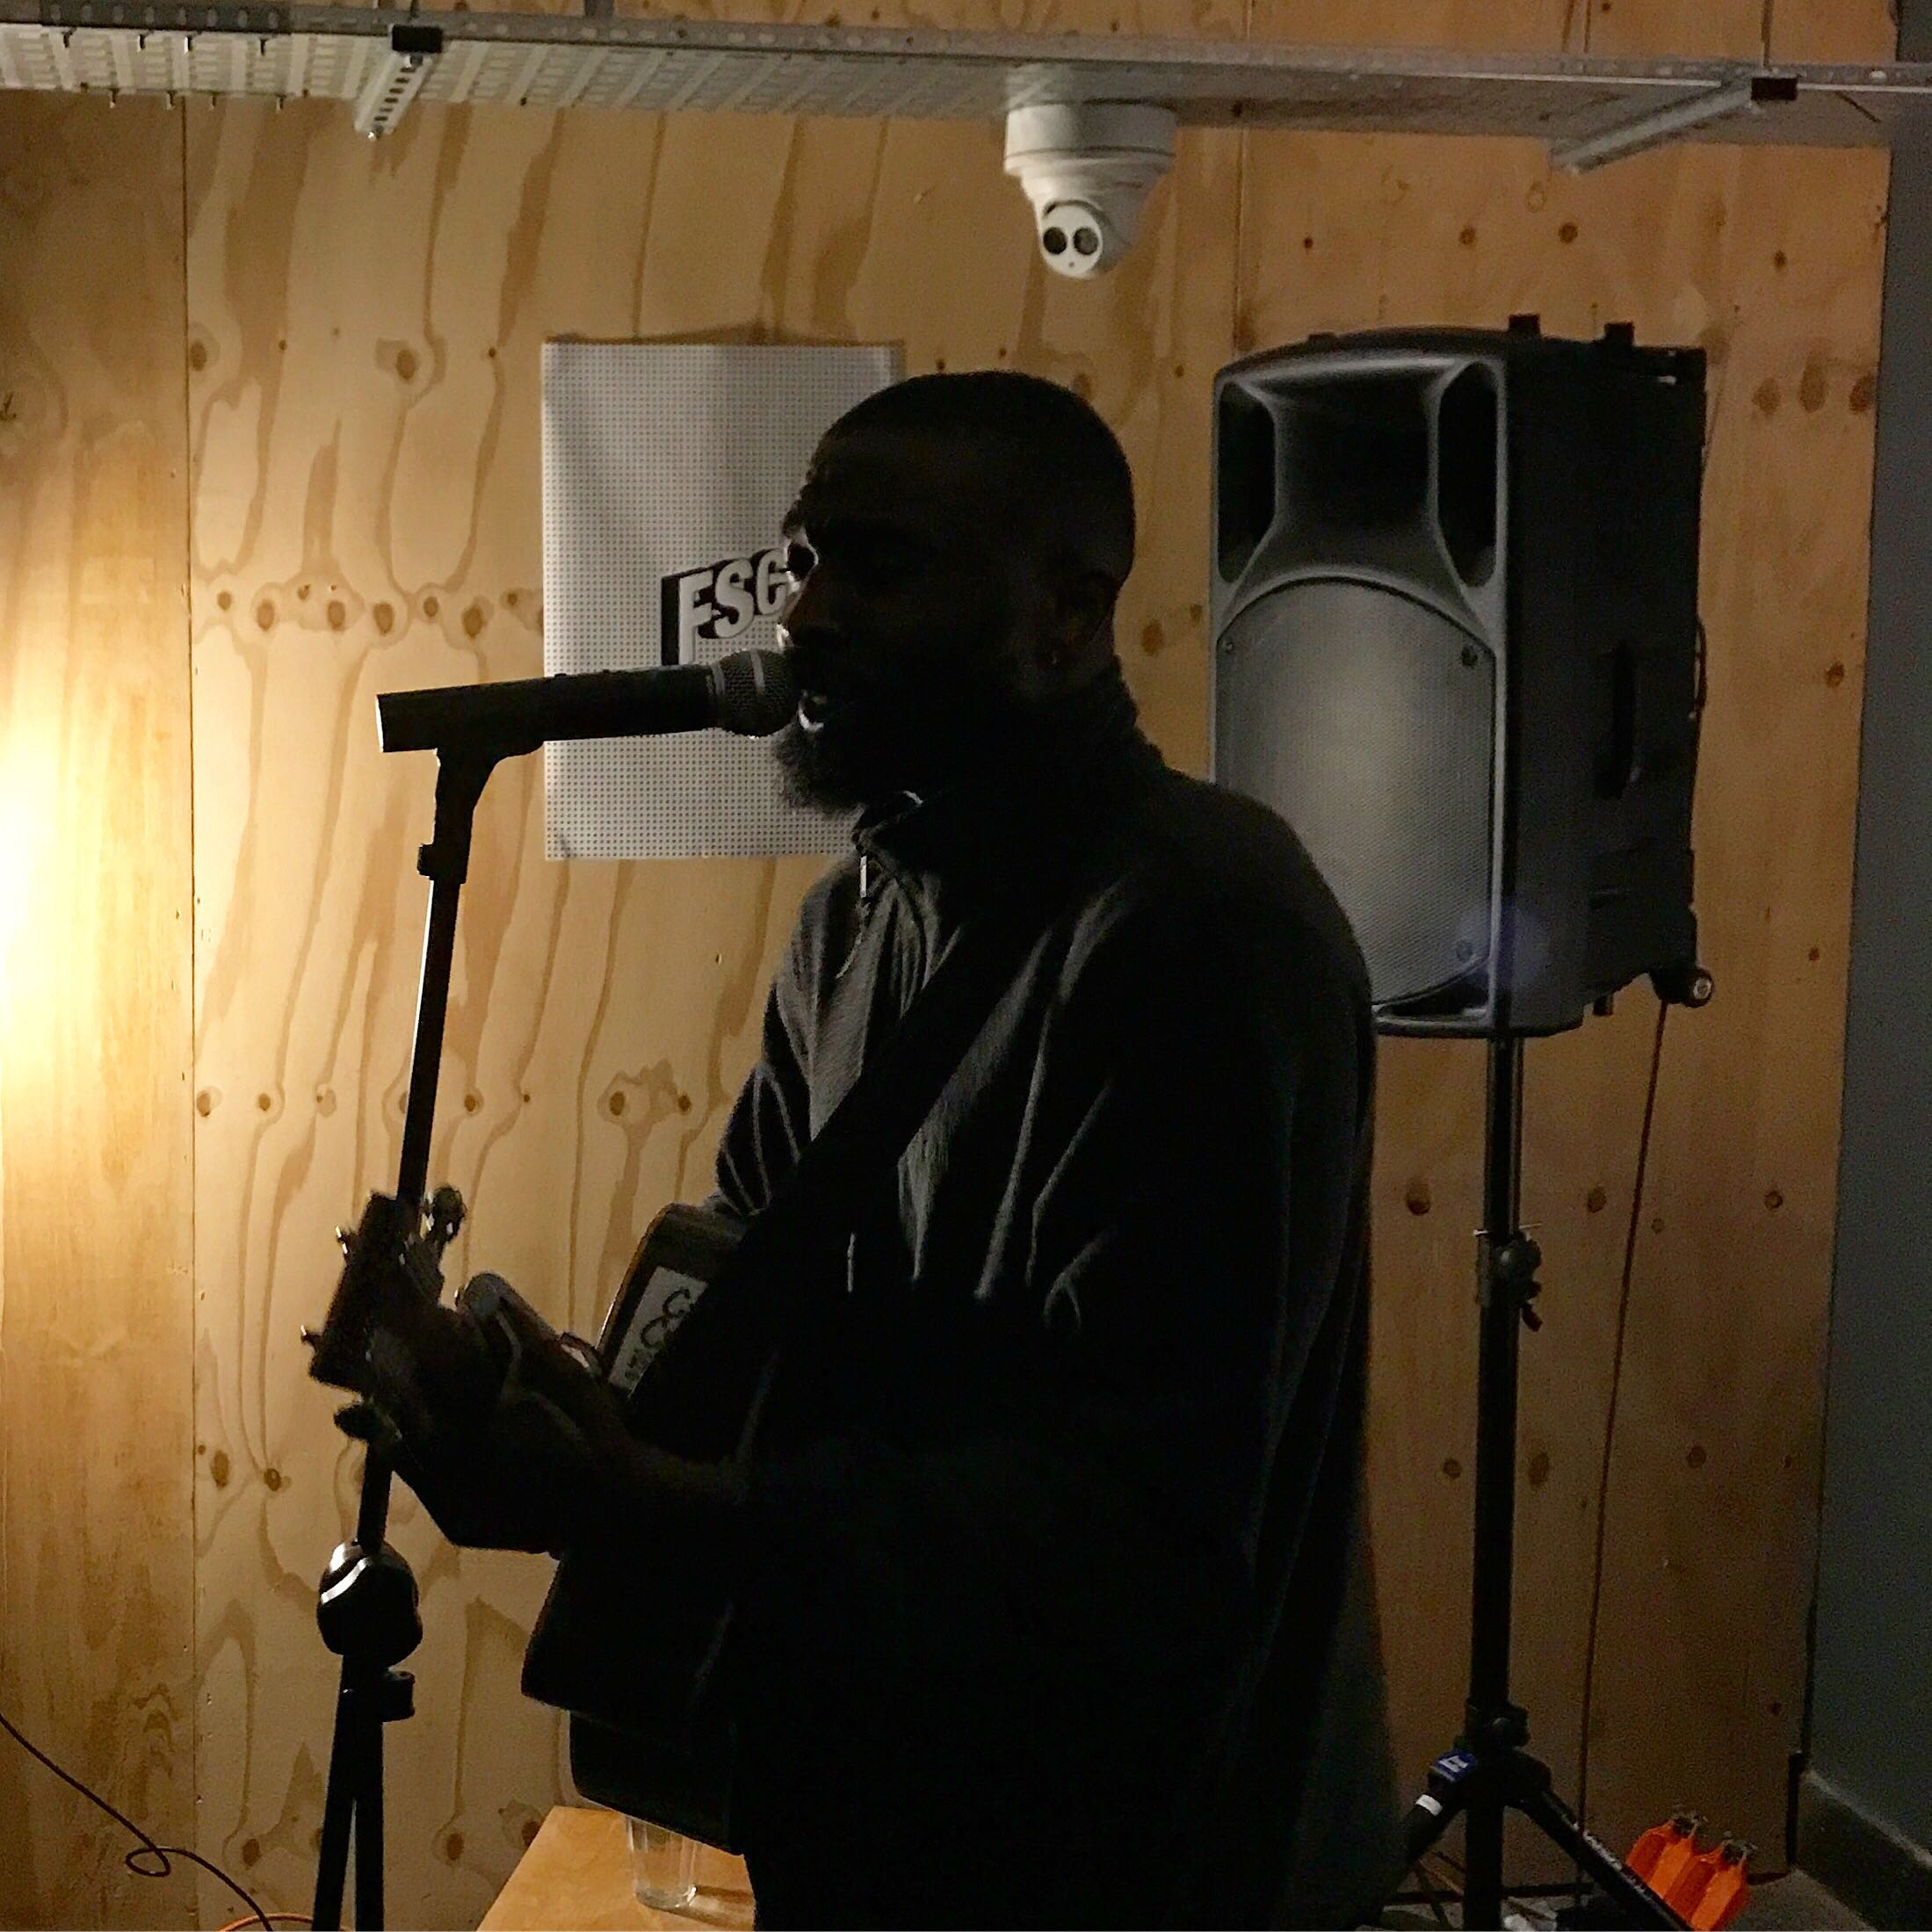 THE 100 party - The FSC hit 100 members! Well, 140 to be precise. We celebrated together on April 12th at Peckham Levels with amazing music from Nia Ekanem and Ella Bee and art from Urban Water-colourist Tom Newman and Poet The Writer.